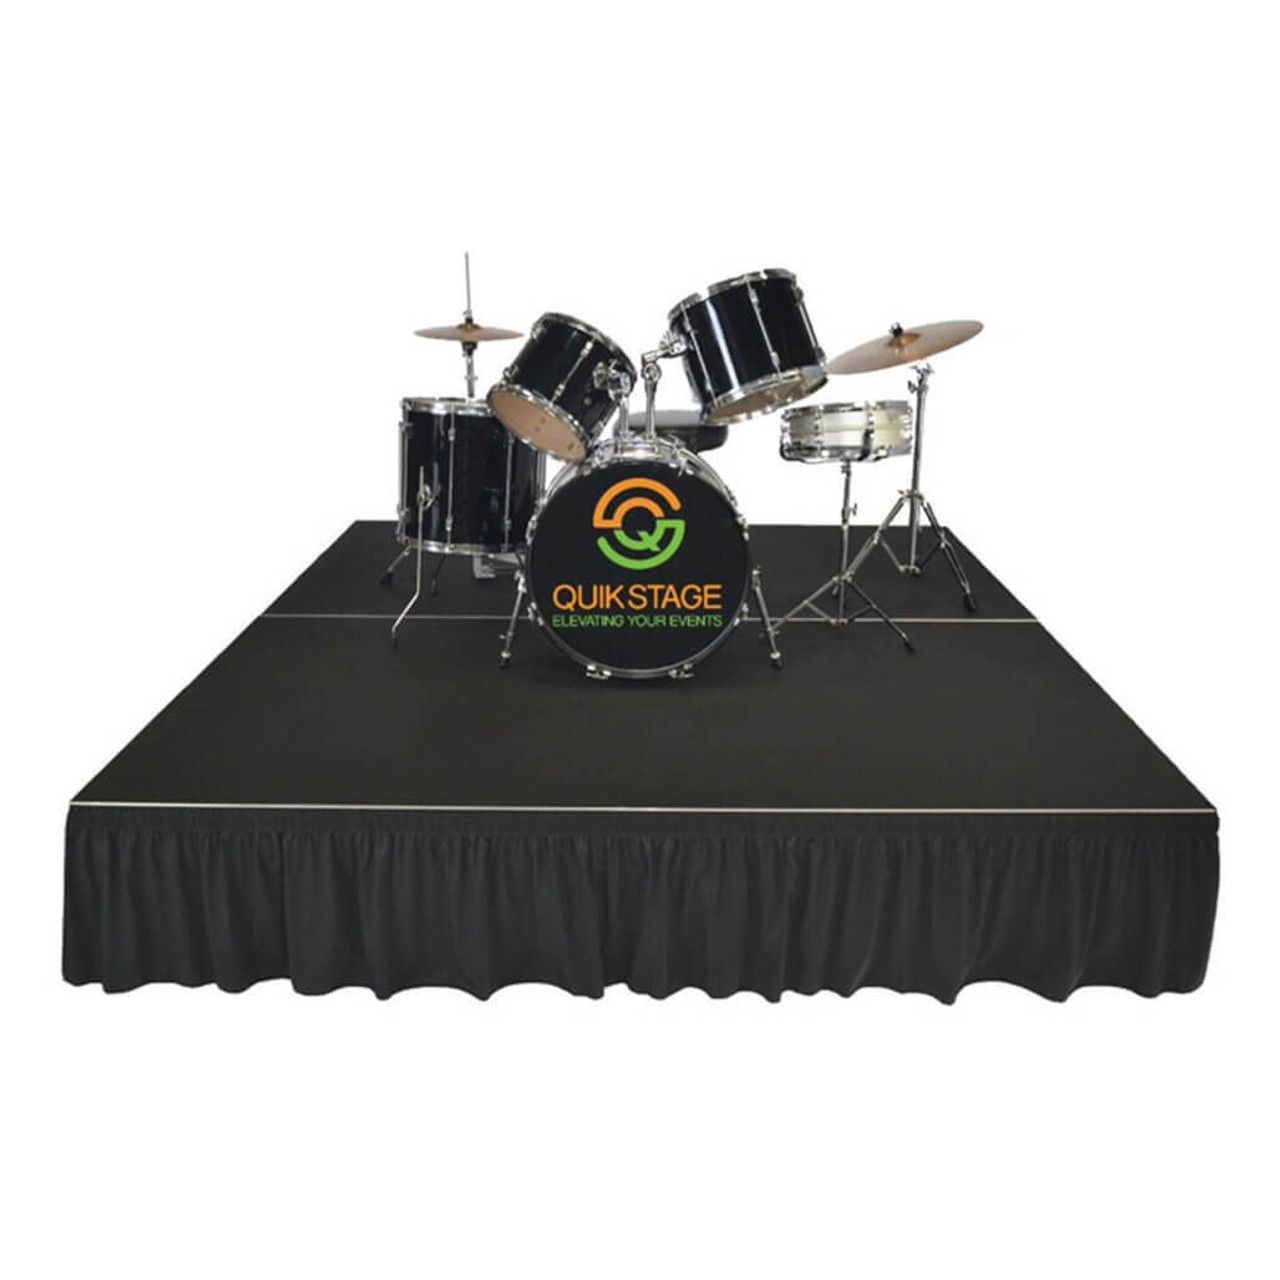 Top reviewed Quik Stage 4' x 4' High Portable Stage Package with Black Polyvinyl Non-Skid Surface. Additional Heights and Surfaces Available - Drum Riser with skirting